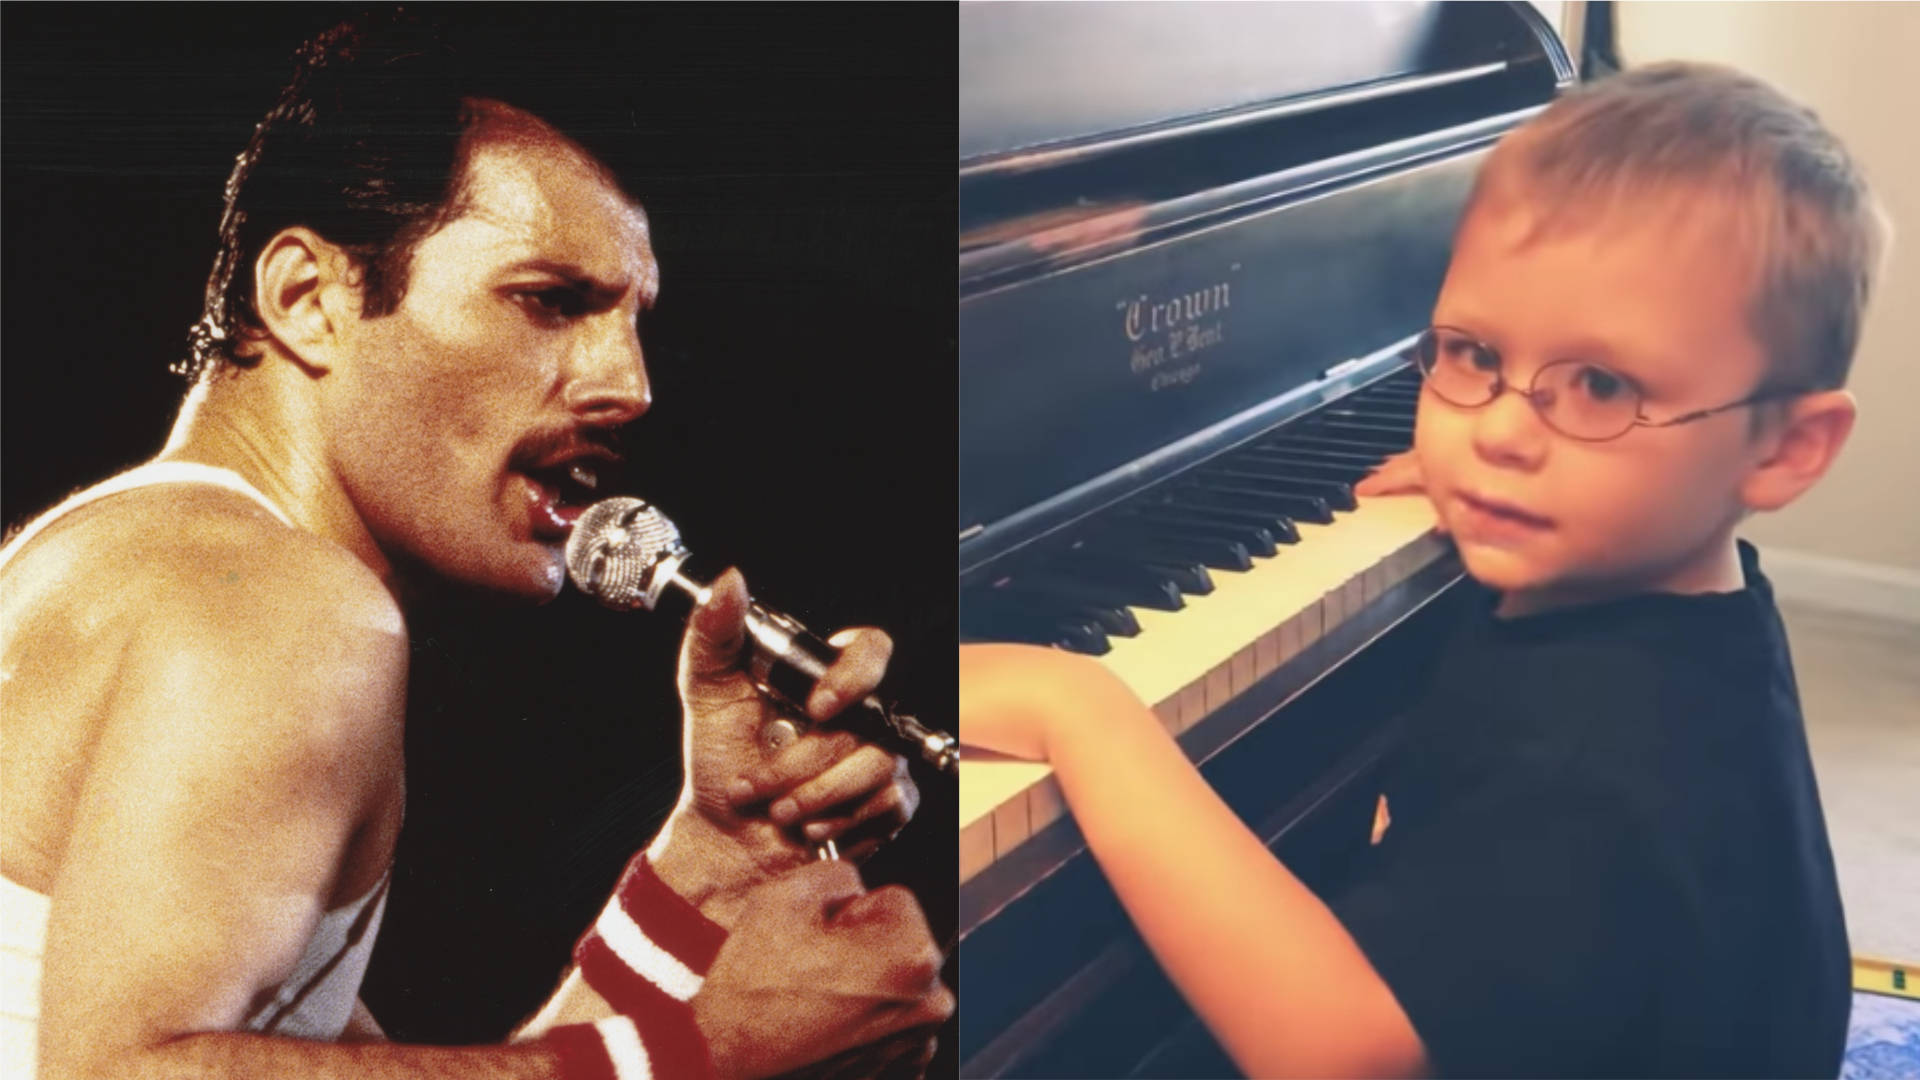 Watch this blind 6-year-old music prodigy's stunning